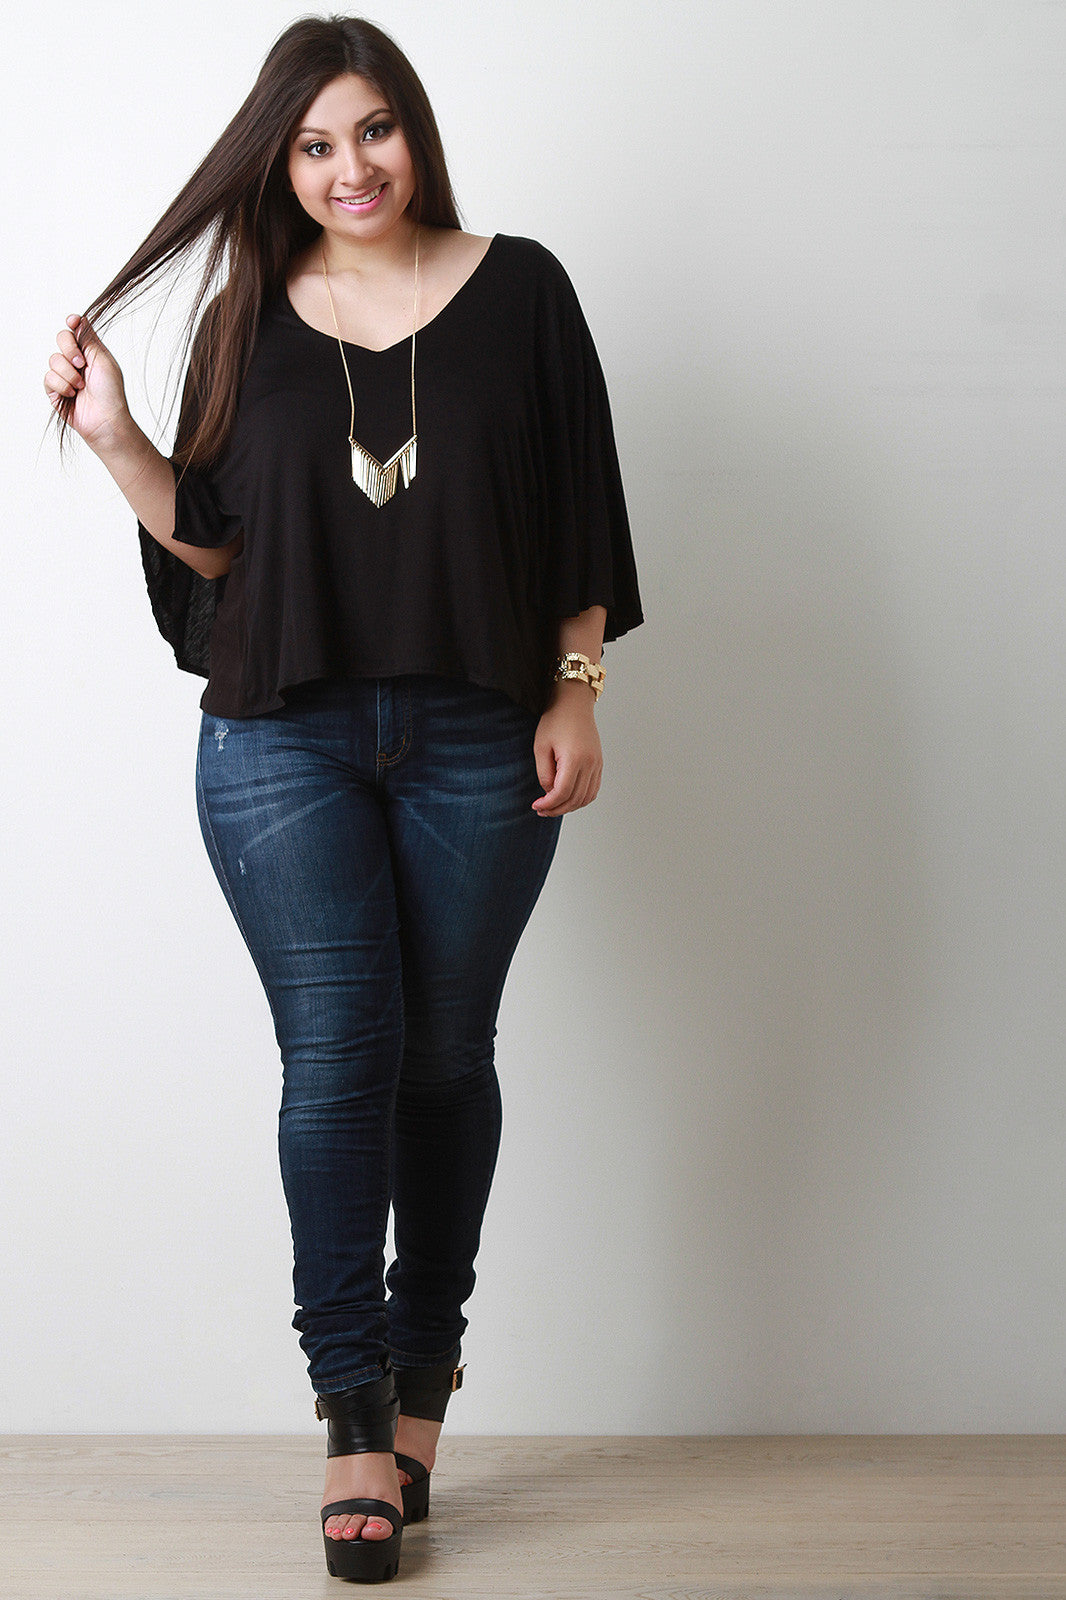 Jersey Knit V-Neck Dolman Sleeve Top - Thick 'N' Curvy Shop - 6